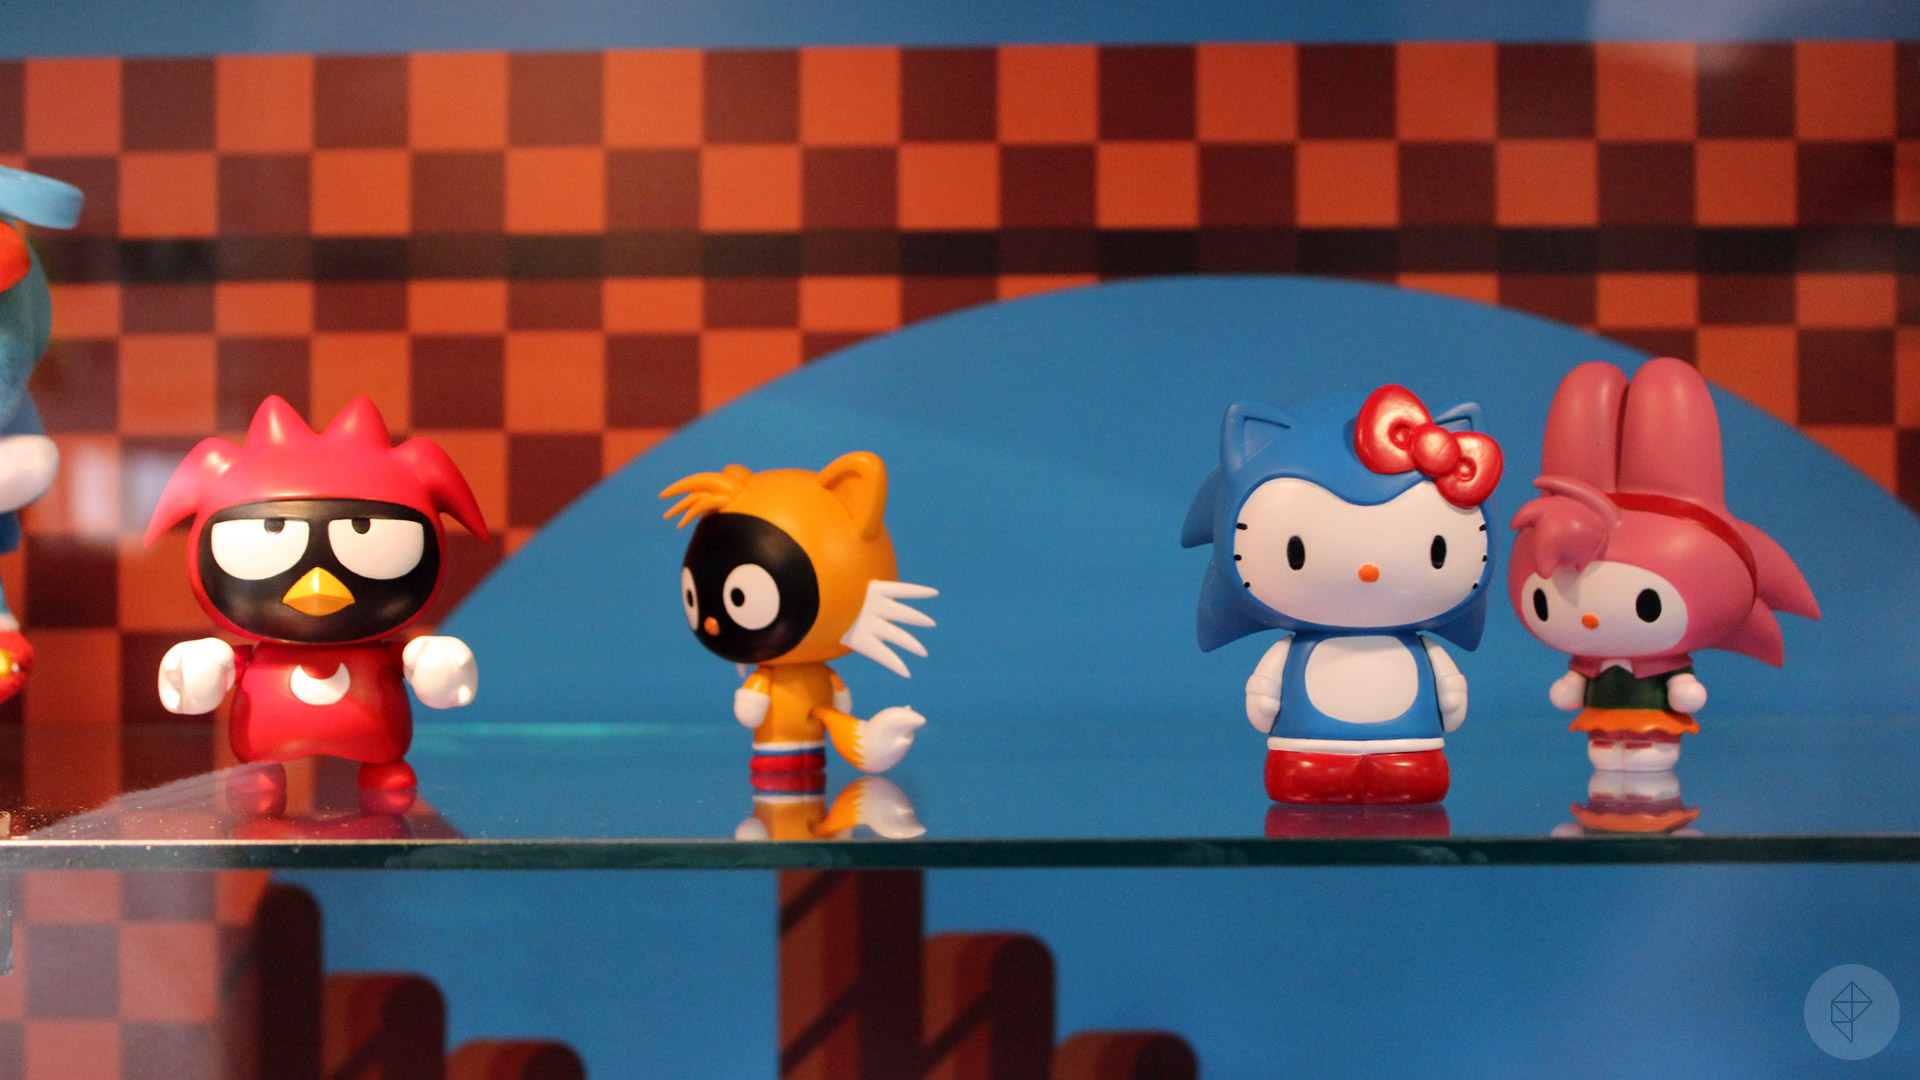 Sonic the Hedgehog Hello Kitty = adorable - Polygon A Wild Pokemon Appears